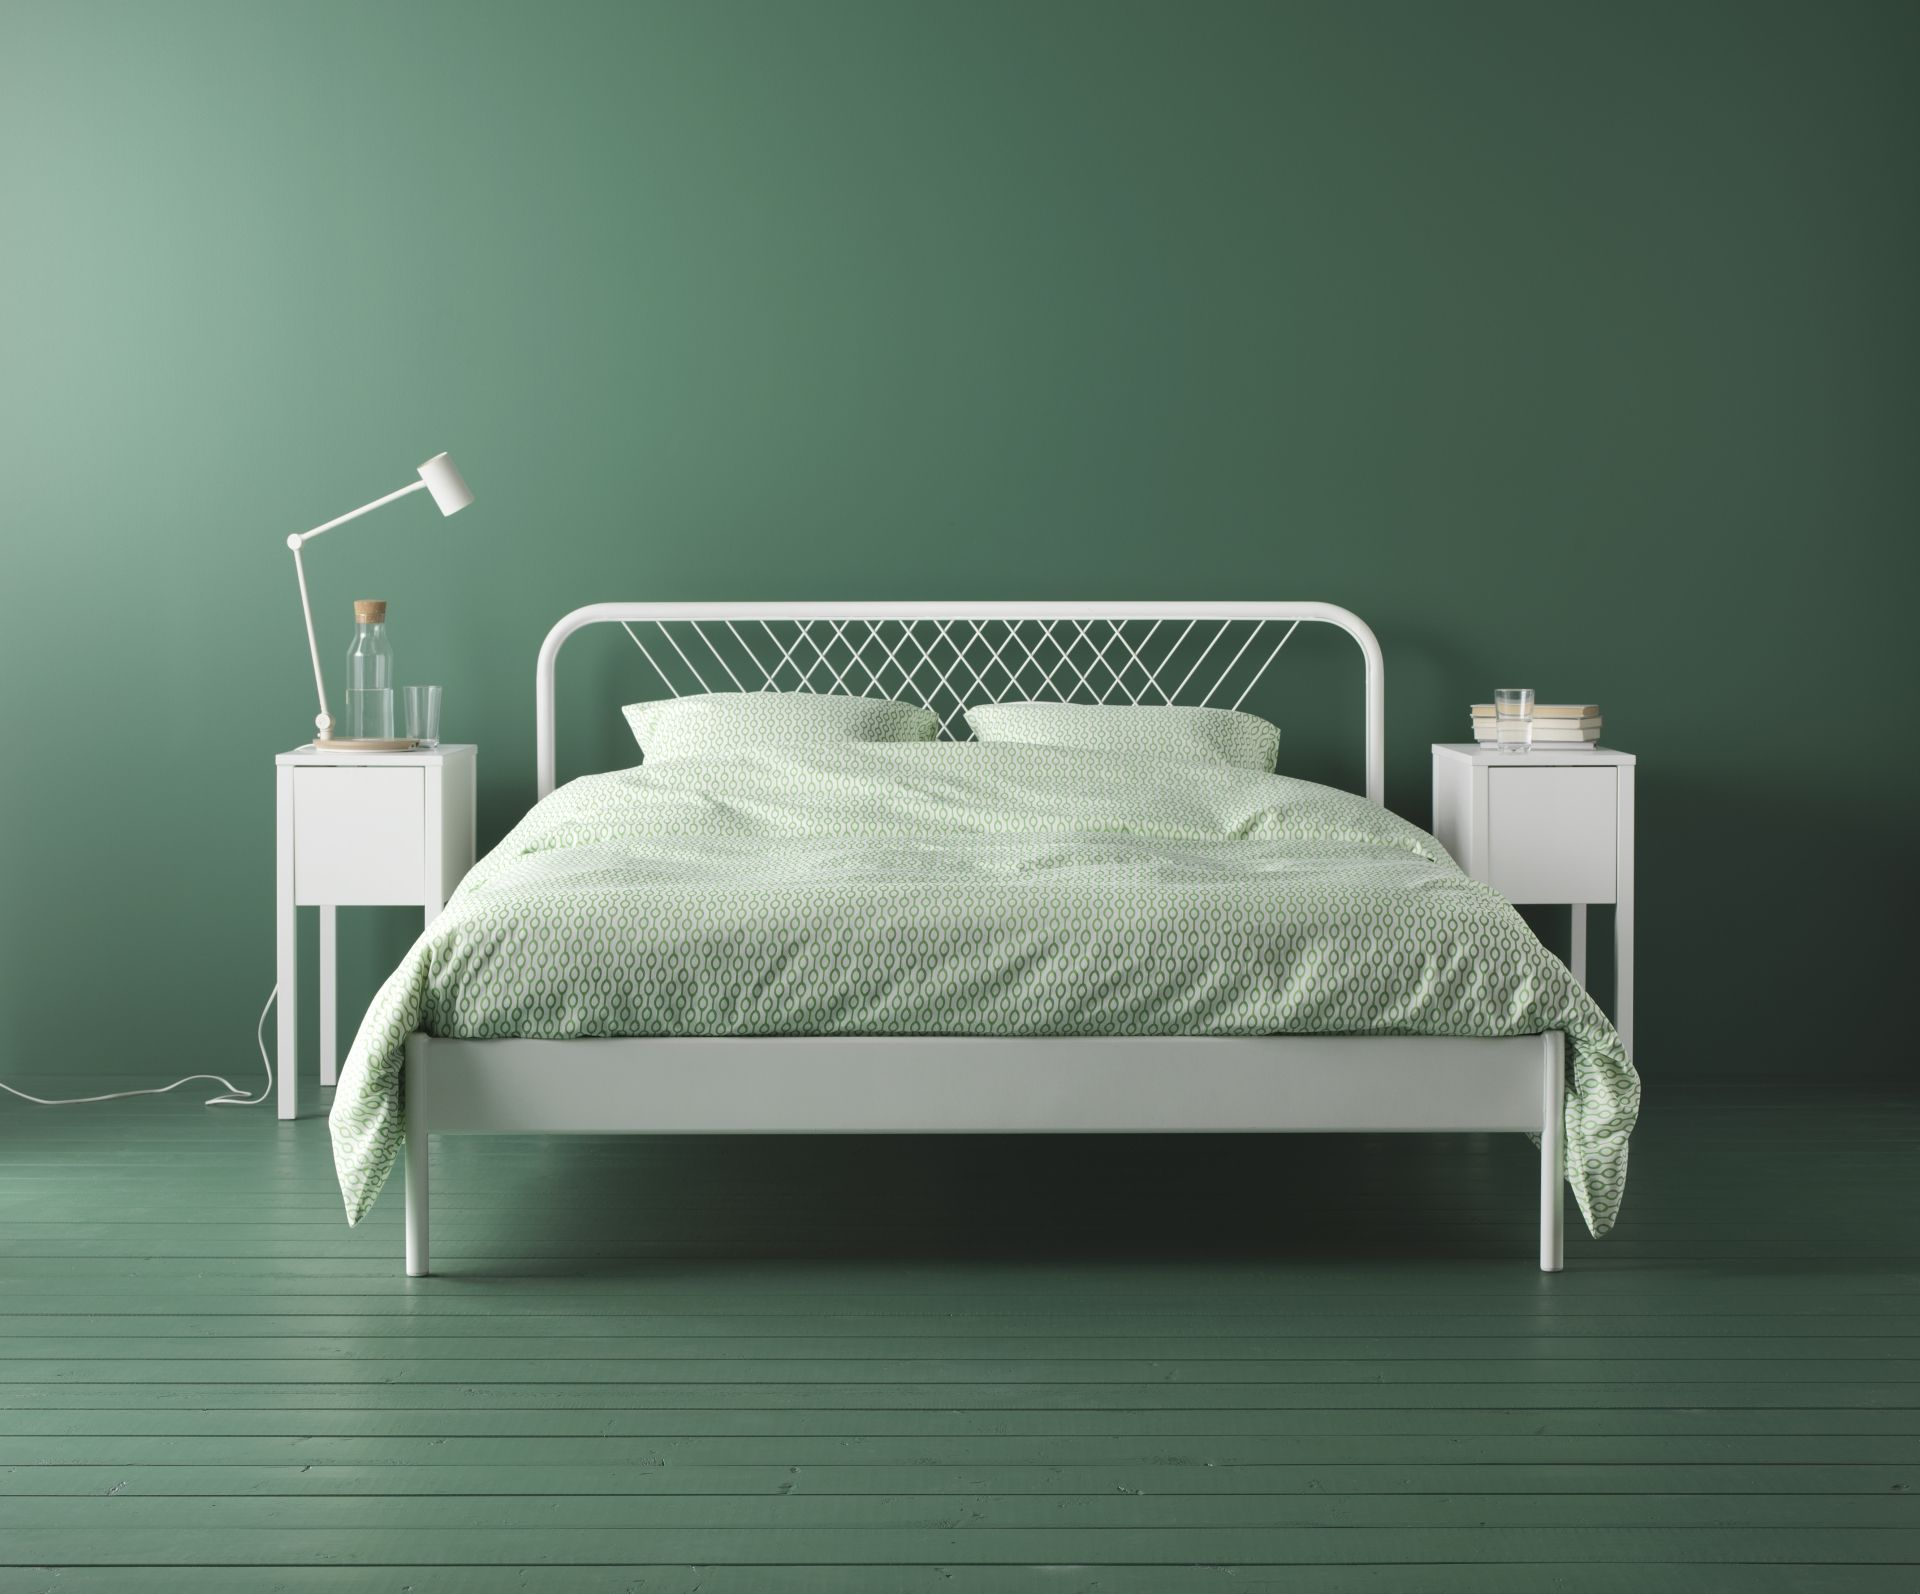 nesttun bed frame, white, luröy | bed frames, mattress and birch - Ikea Letto Wenge